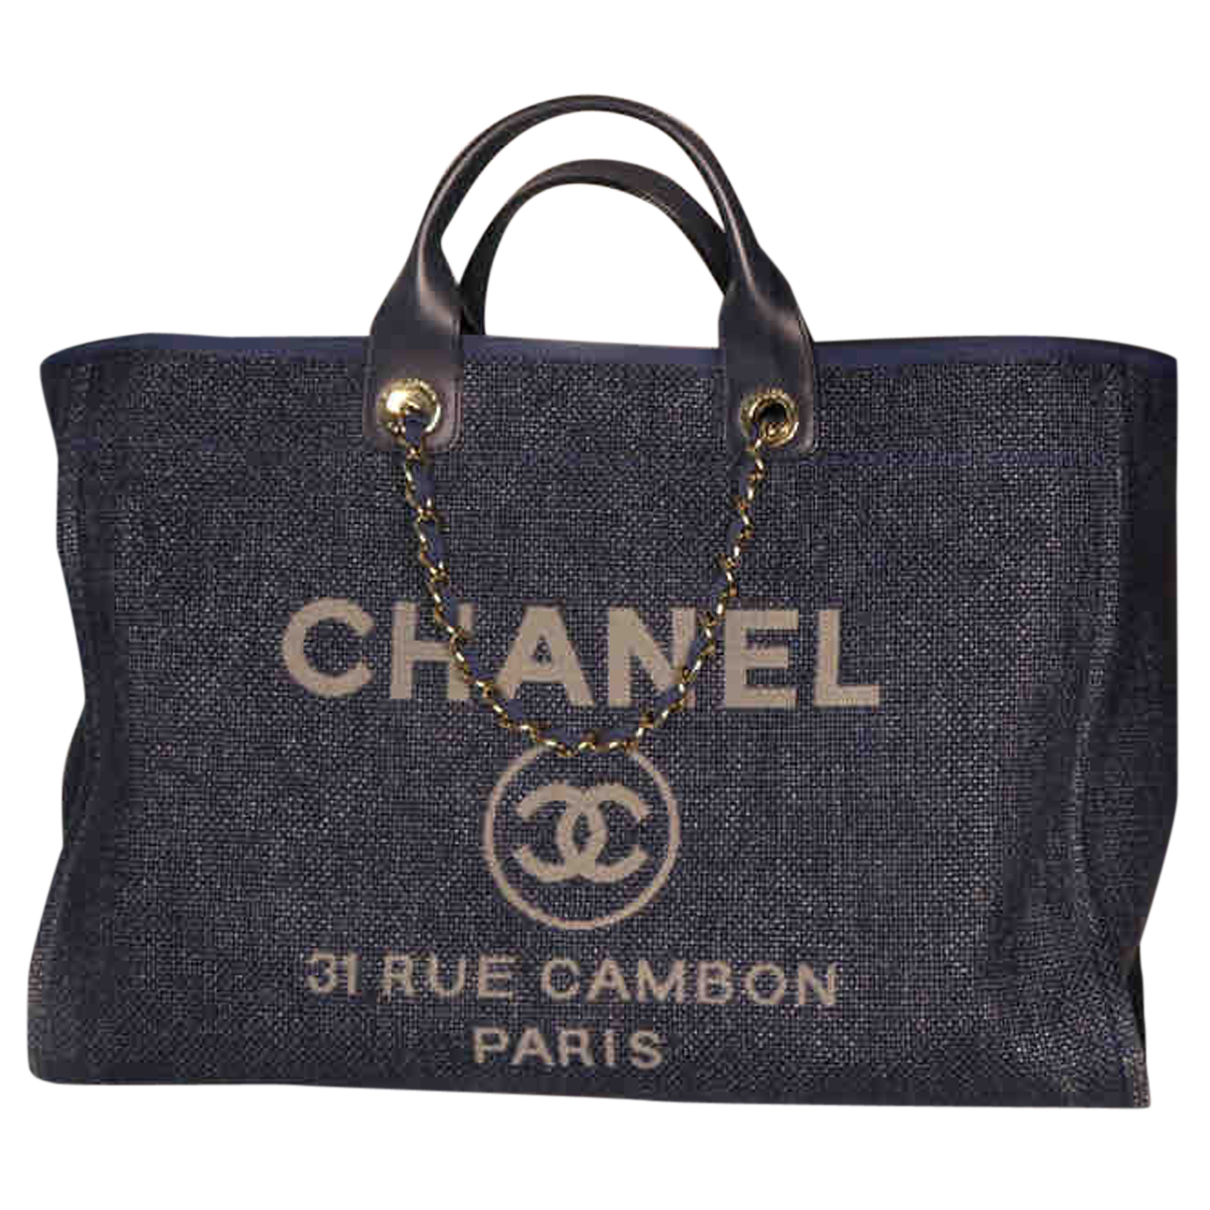 Chanel Deauville Blue Denim - Jeans handbag for Women N